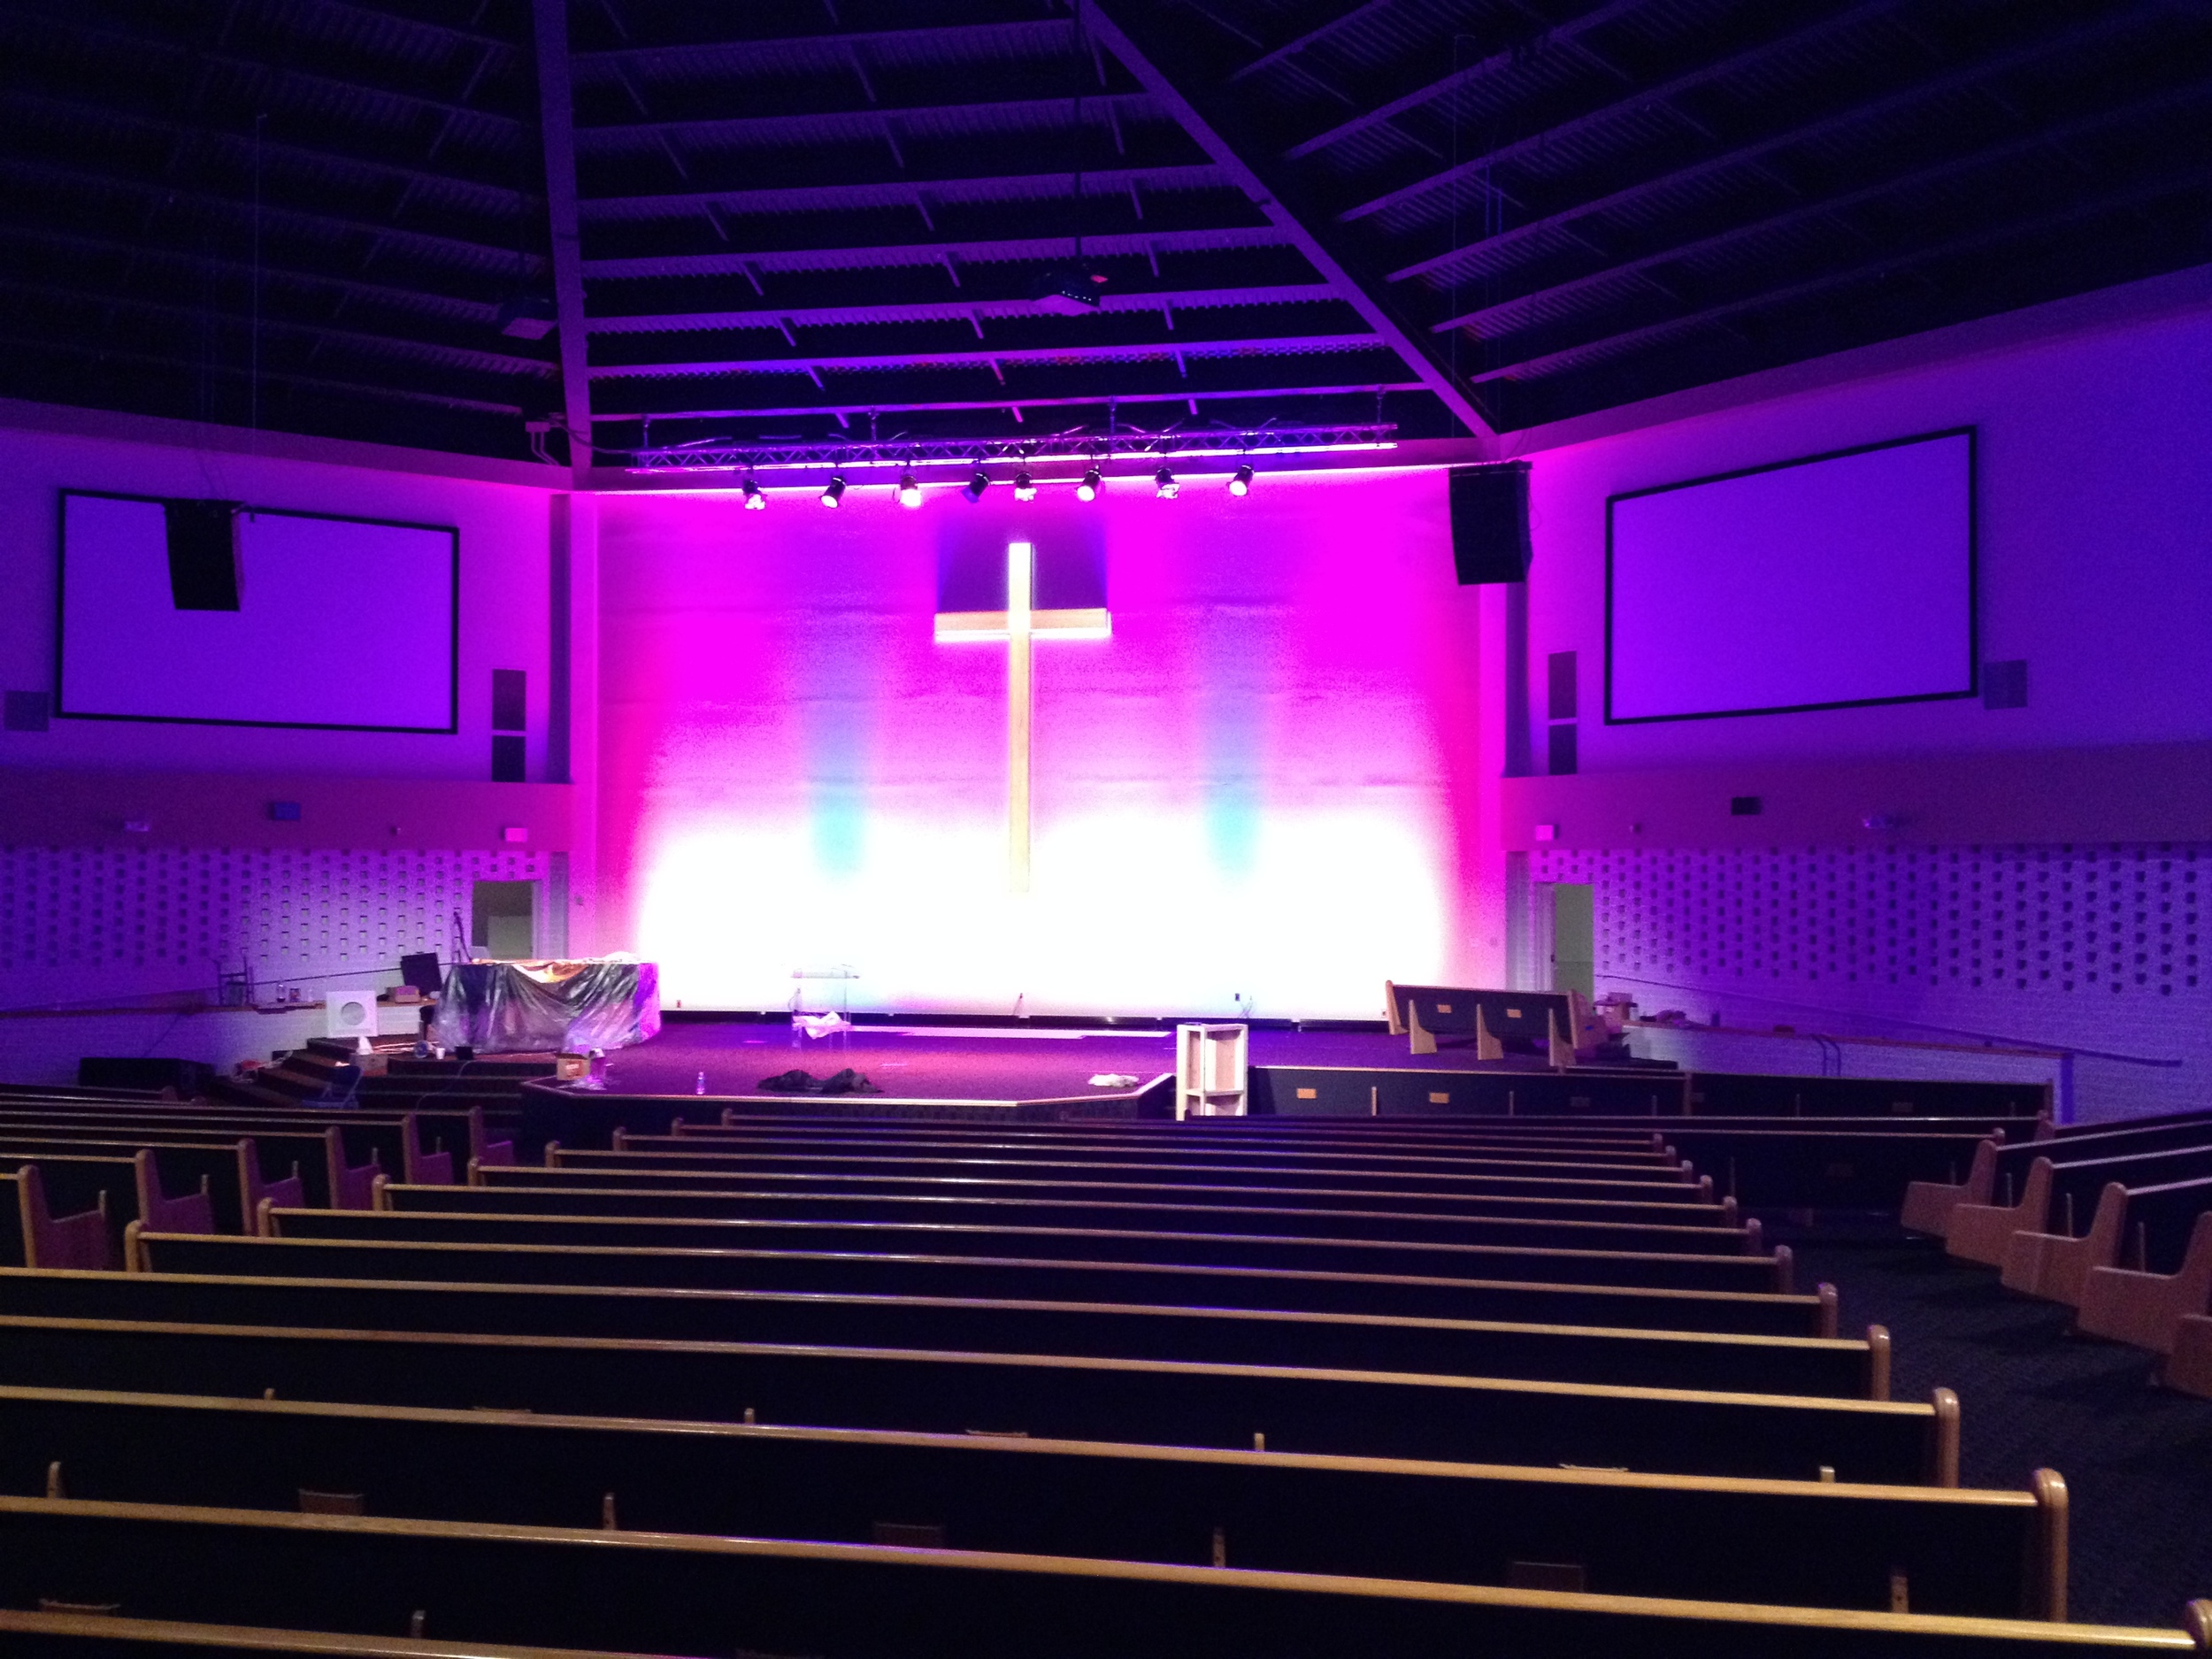 Chesapeake_Christian_Fellowship_Church_38.jpg